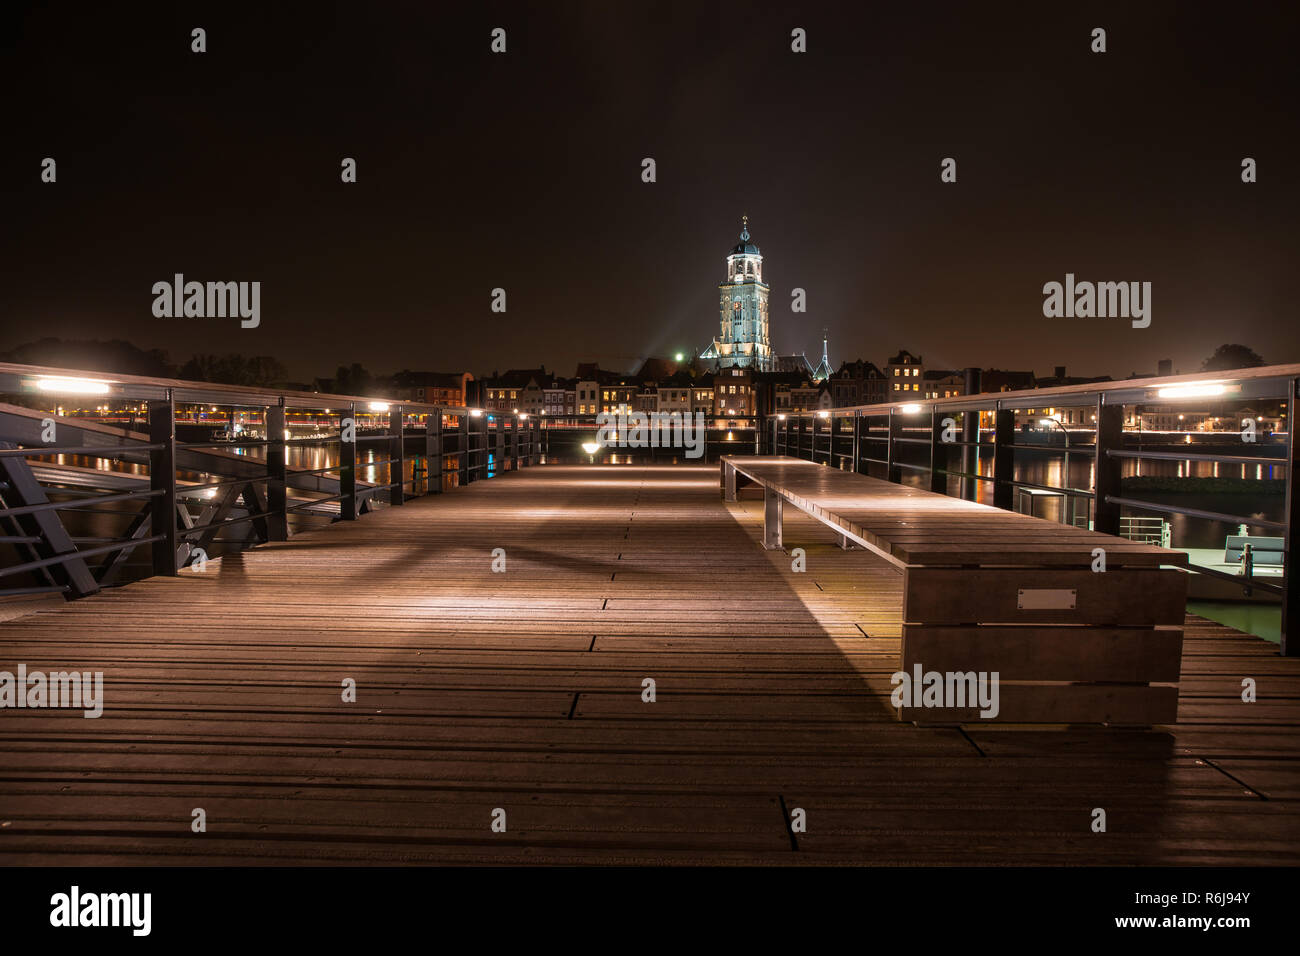 Deventer at night with view from a jetty over the river Ijssel. The tower of the Lebuinus church is towered above the beautifully lit cityscape. Stock Photo